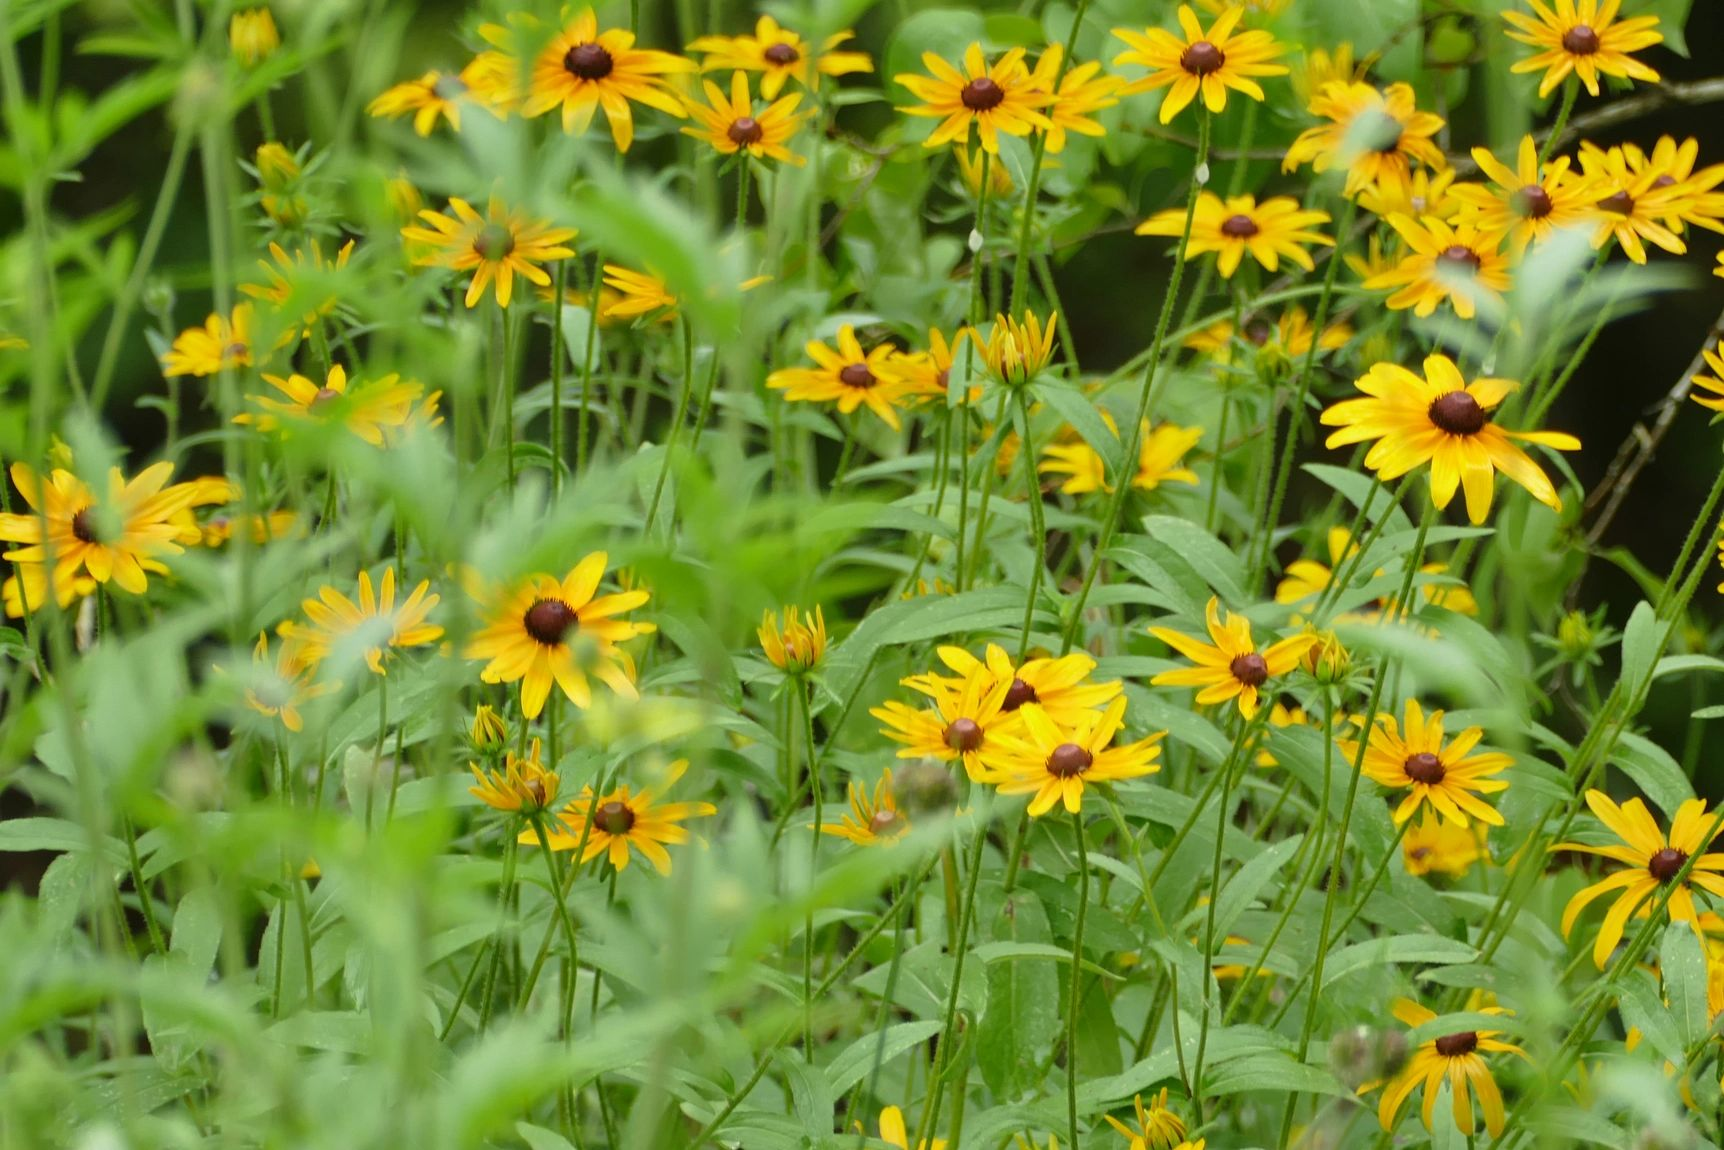 "{""blocks"":[{""key"":""l1l0"",""text"":""Rudbeckia missouriensis Missouri Coneflower, Missouri Black-eyed  Susan - potted plants email john@easywildflowers.com"",""type"":""unstyled"",""depth"":0,""inlineStyleRanges"":[],""entityRanges"":[],""data"":{}}],""entityMap"":{}}"